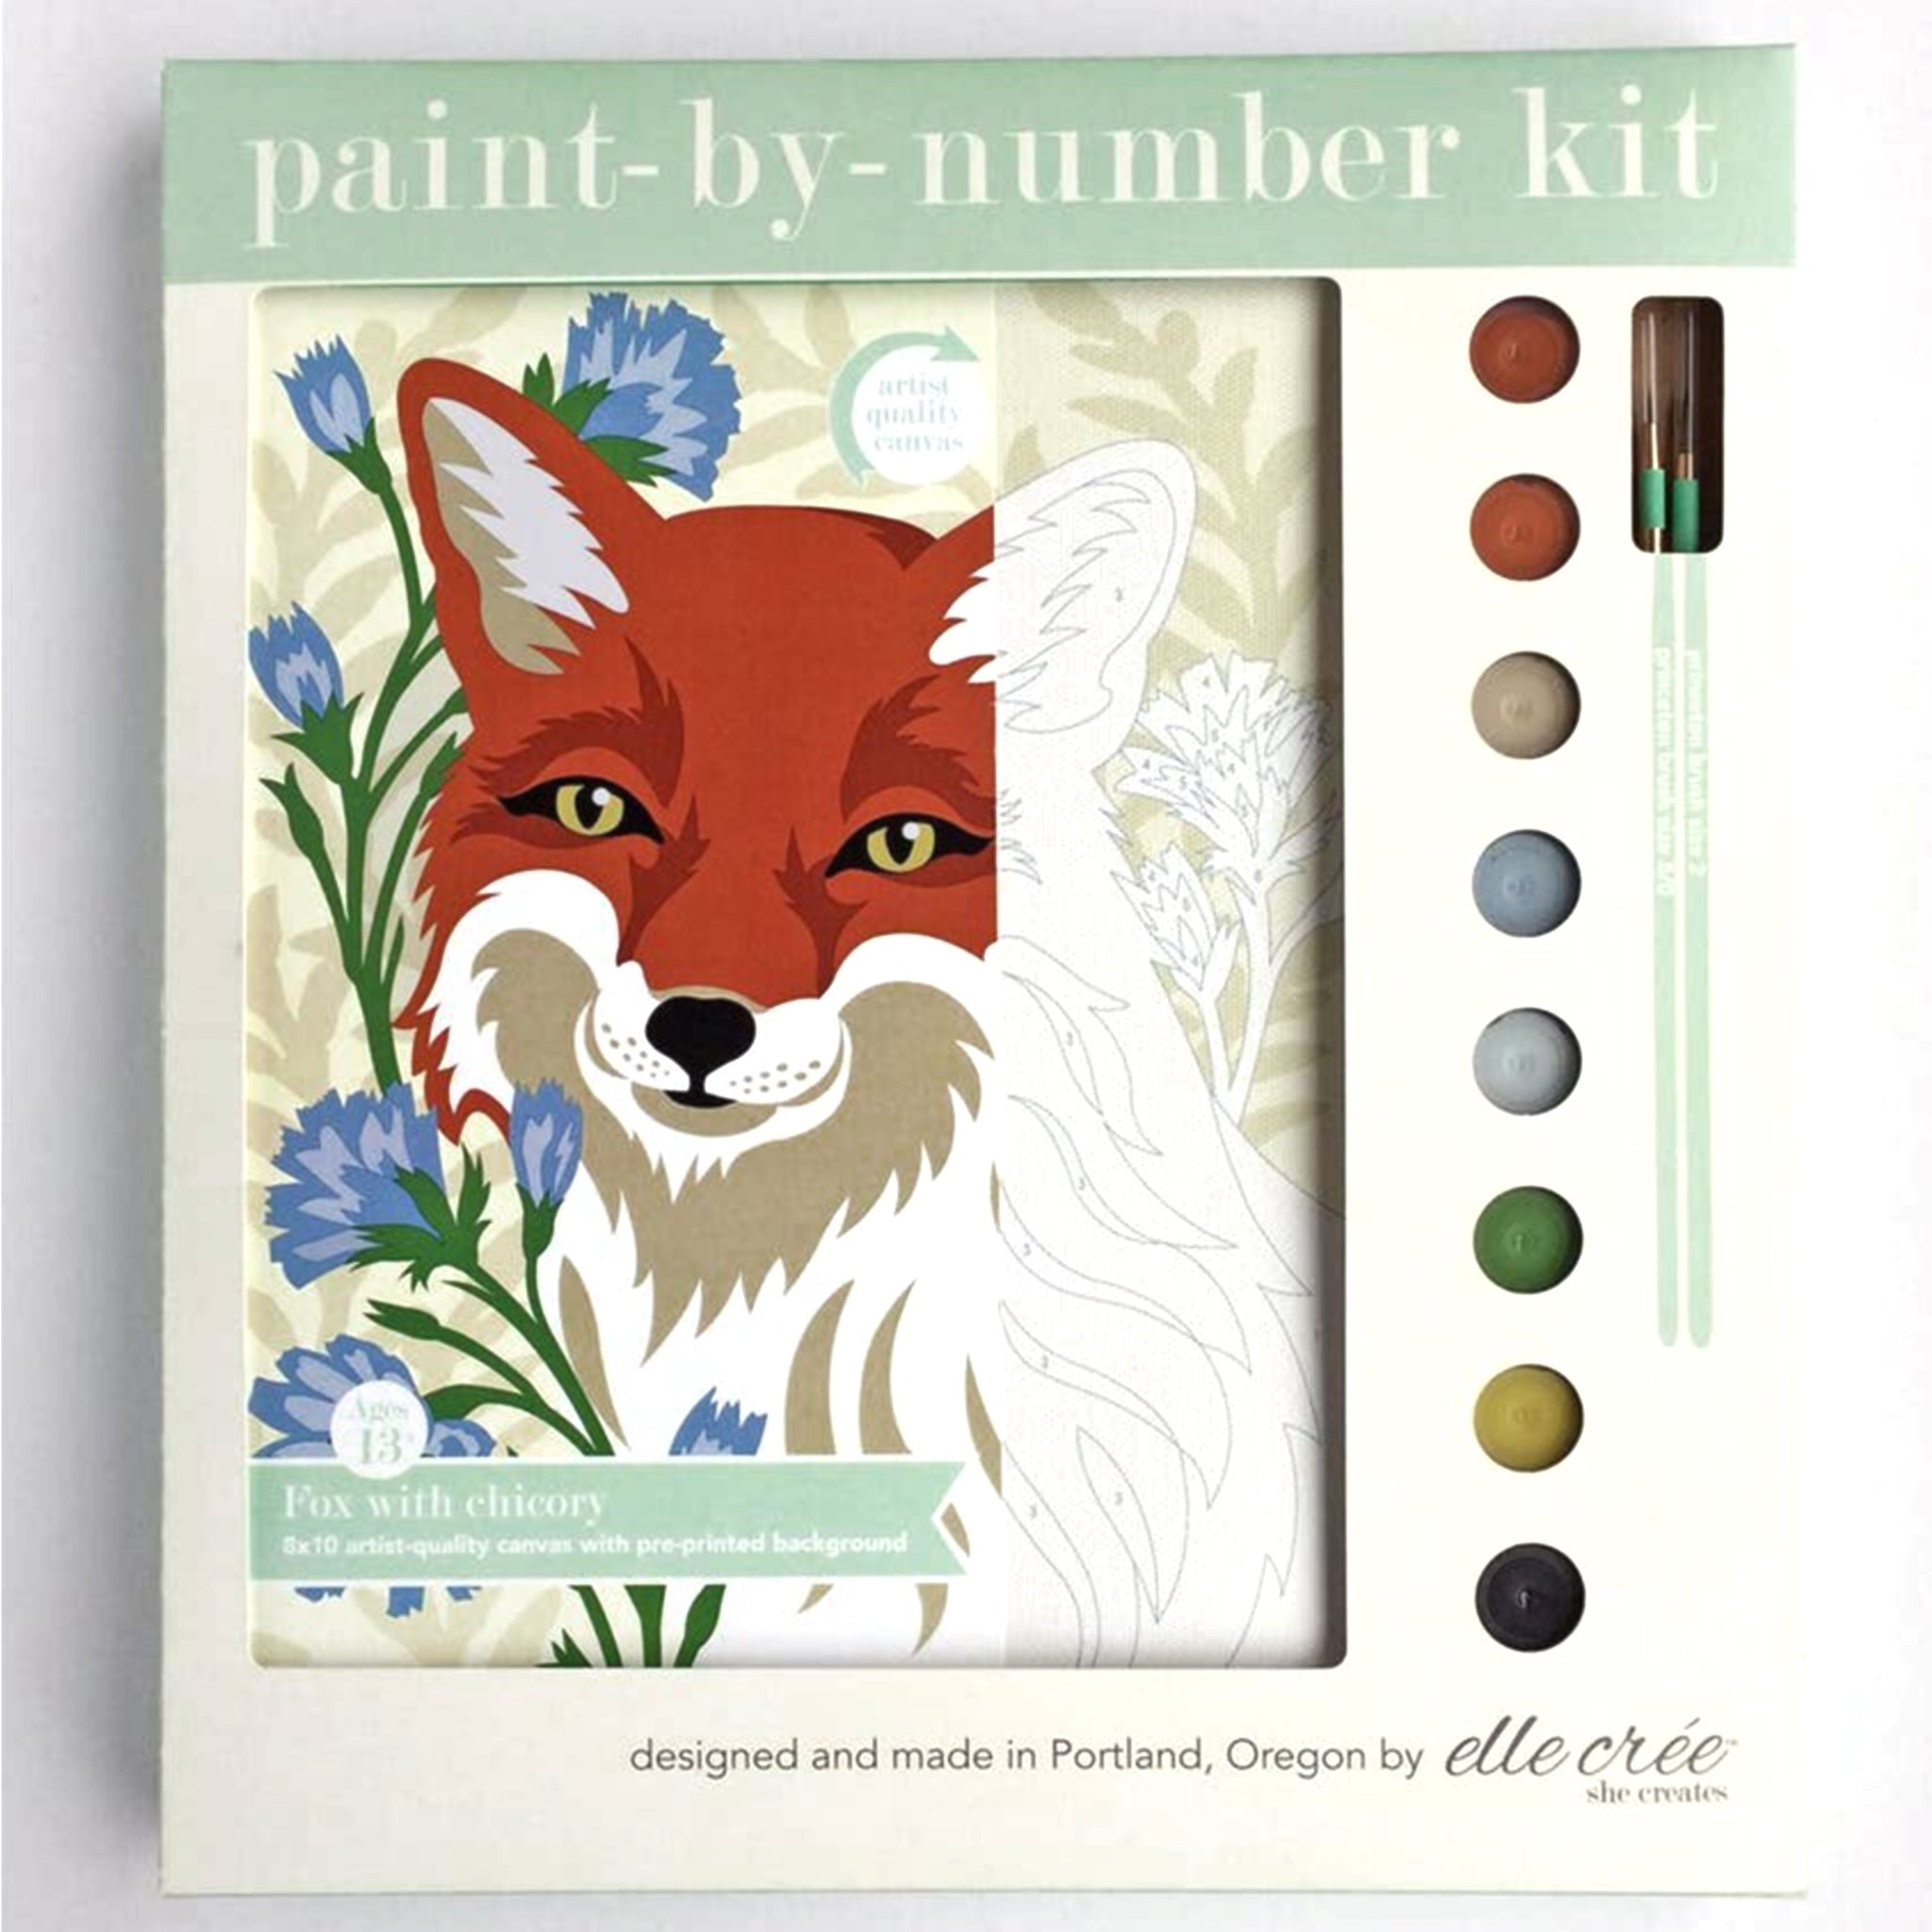 """Fox with Chicory"" Paint-by-Number Kit by elle crée - by elle crée - K. A. Artist Shop"